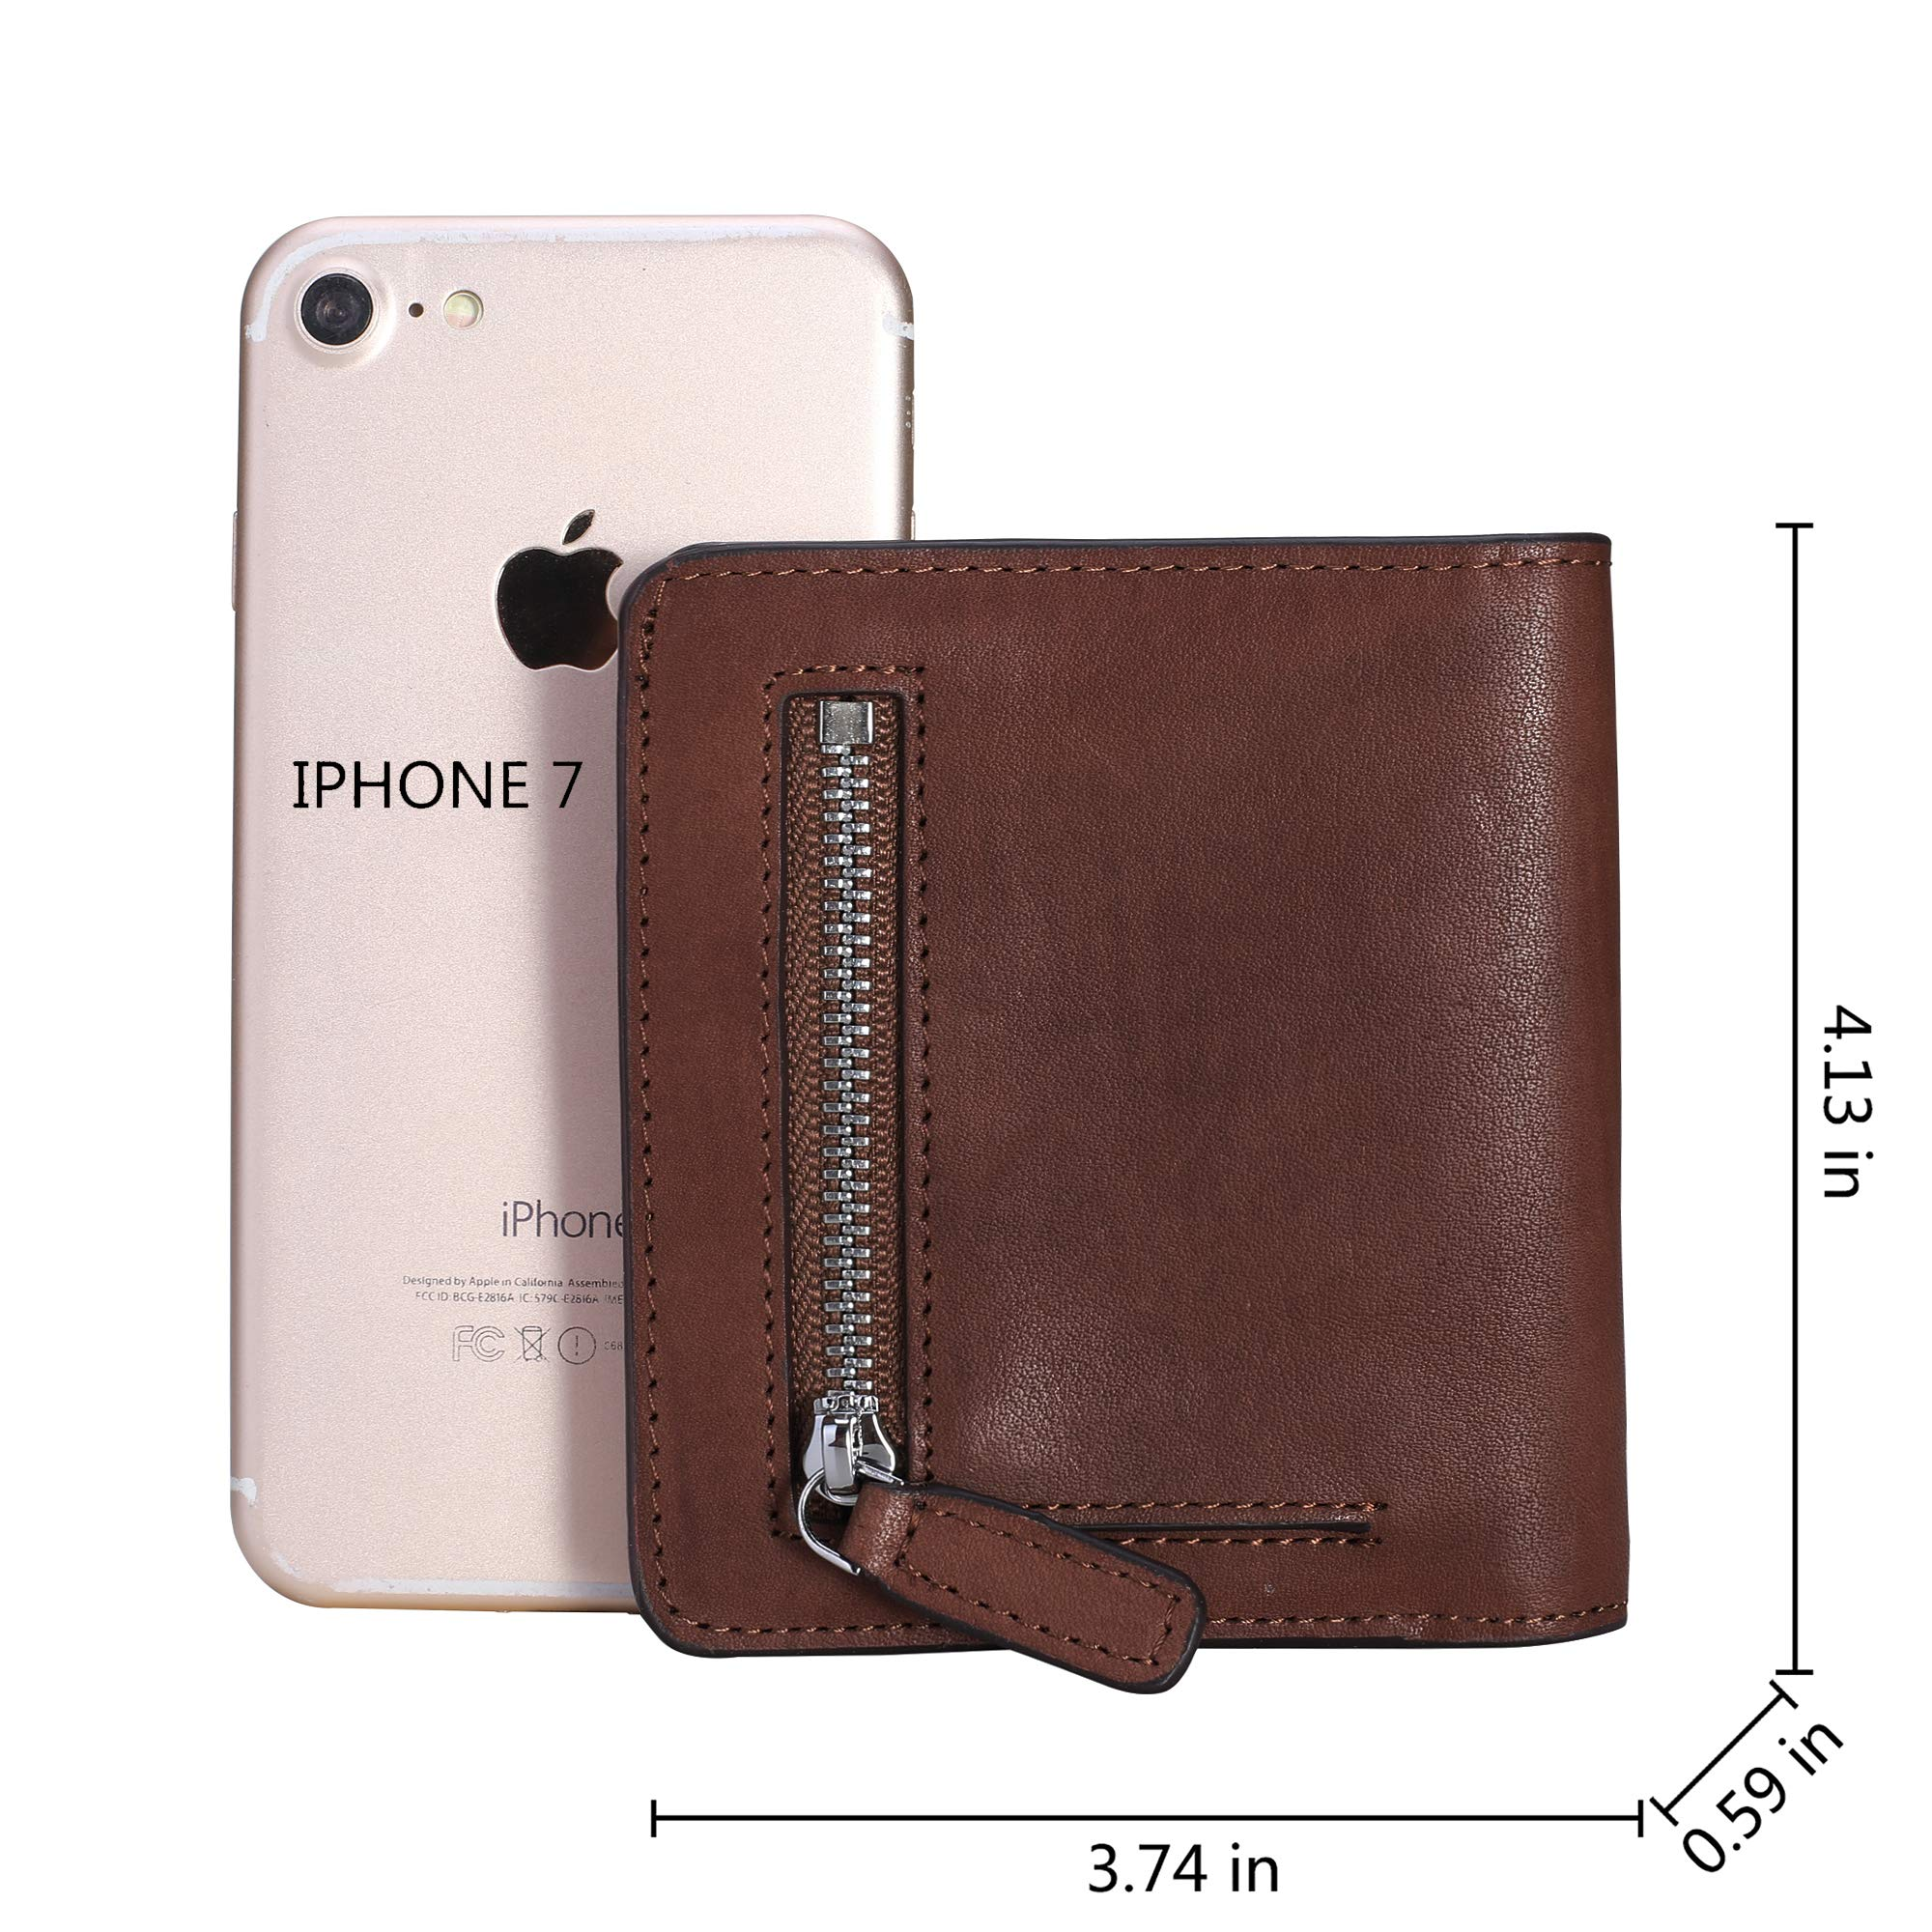 BIG SALE-AINIMOER Women's RFID Blocking Leather Small Compact Bifold Pocket Wallet Ladies Mini Purse with id Window (Vintage Brown) by AINIMOER (Image #5)